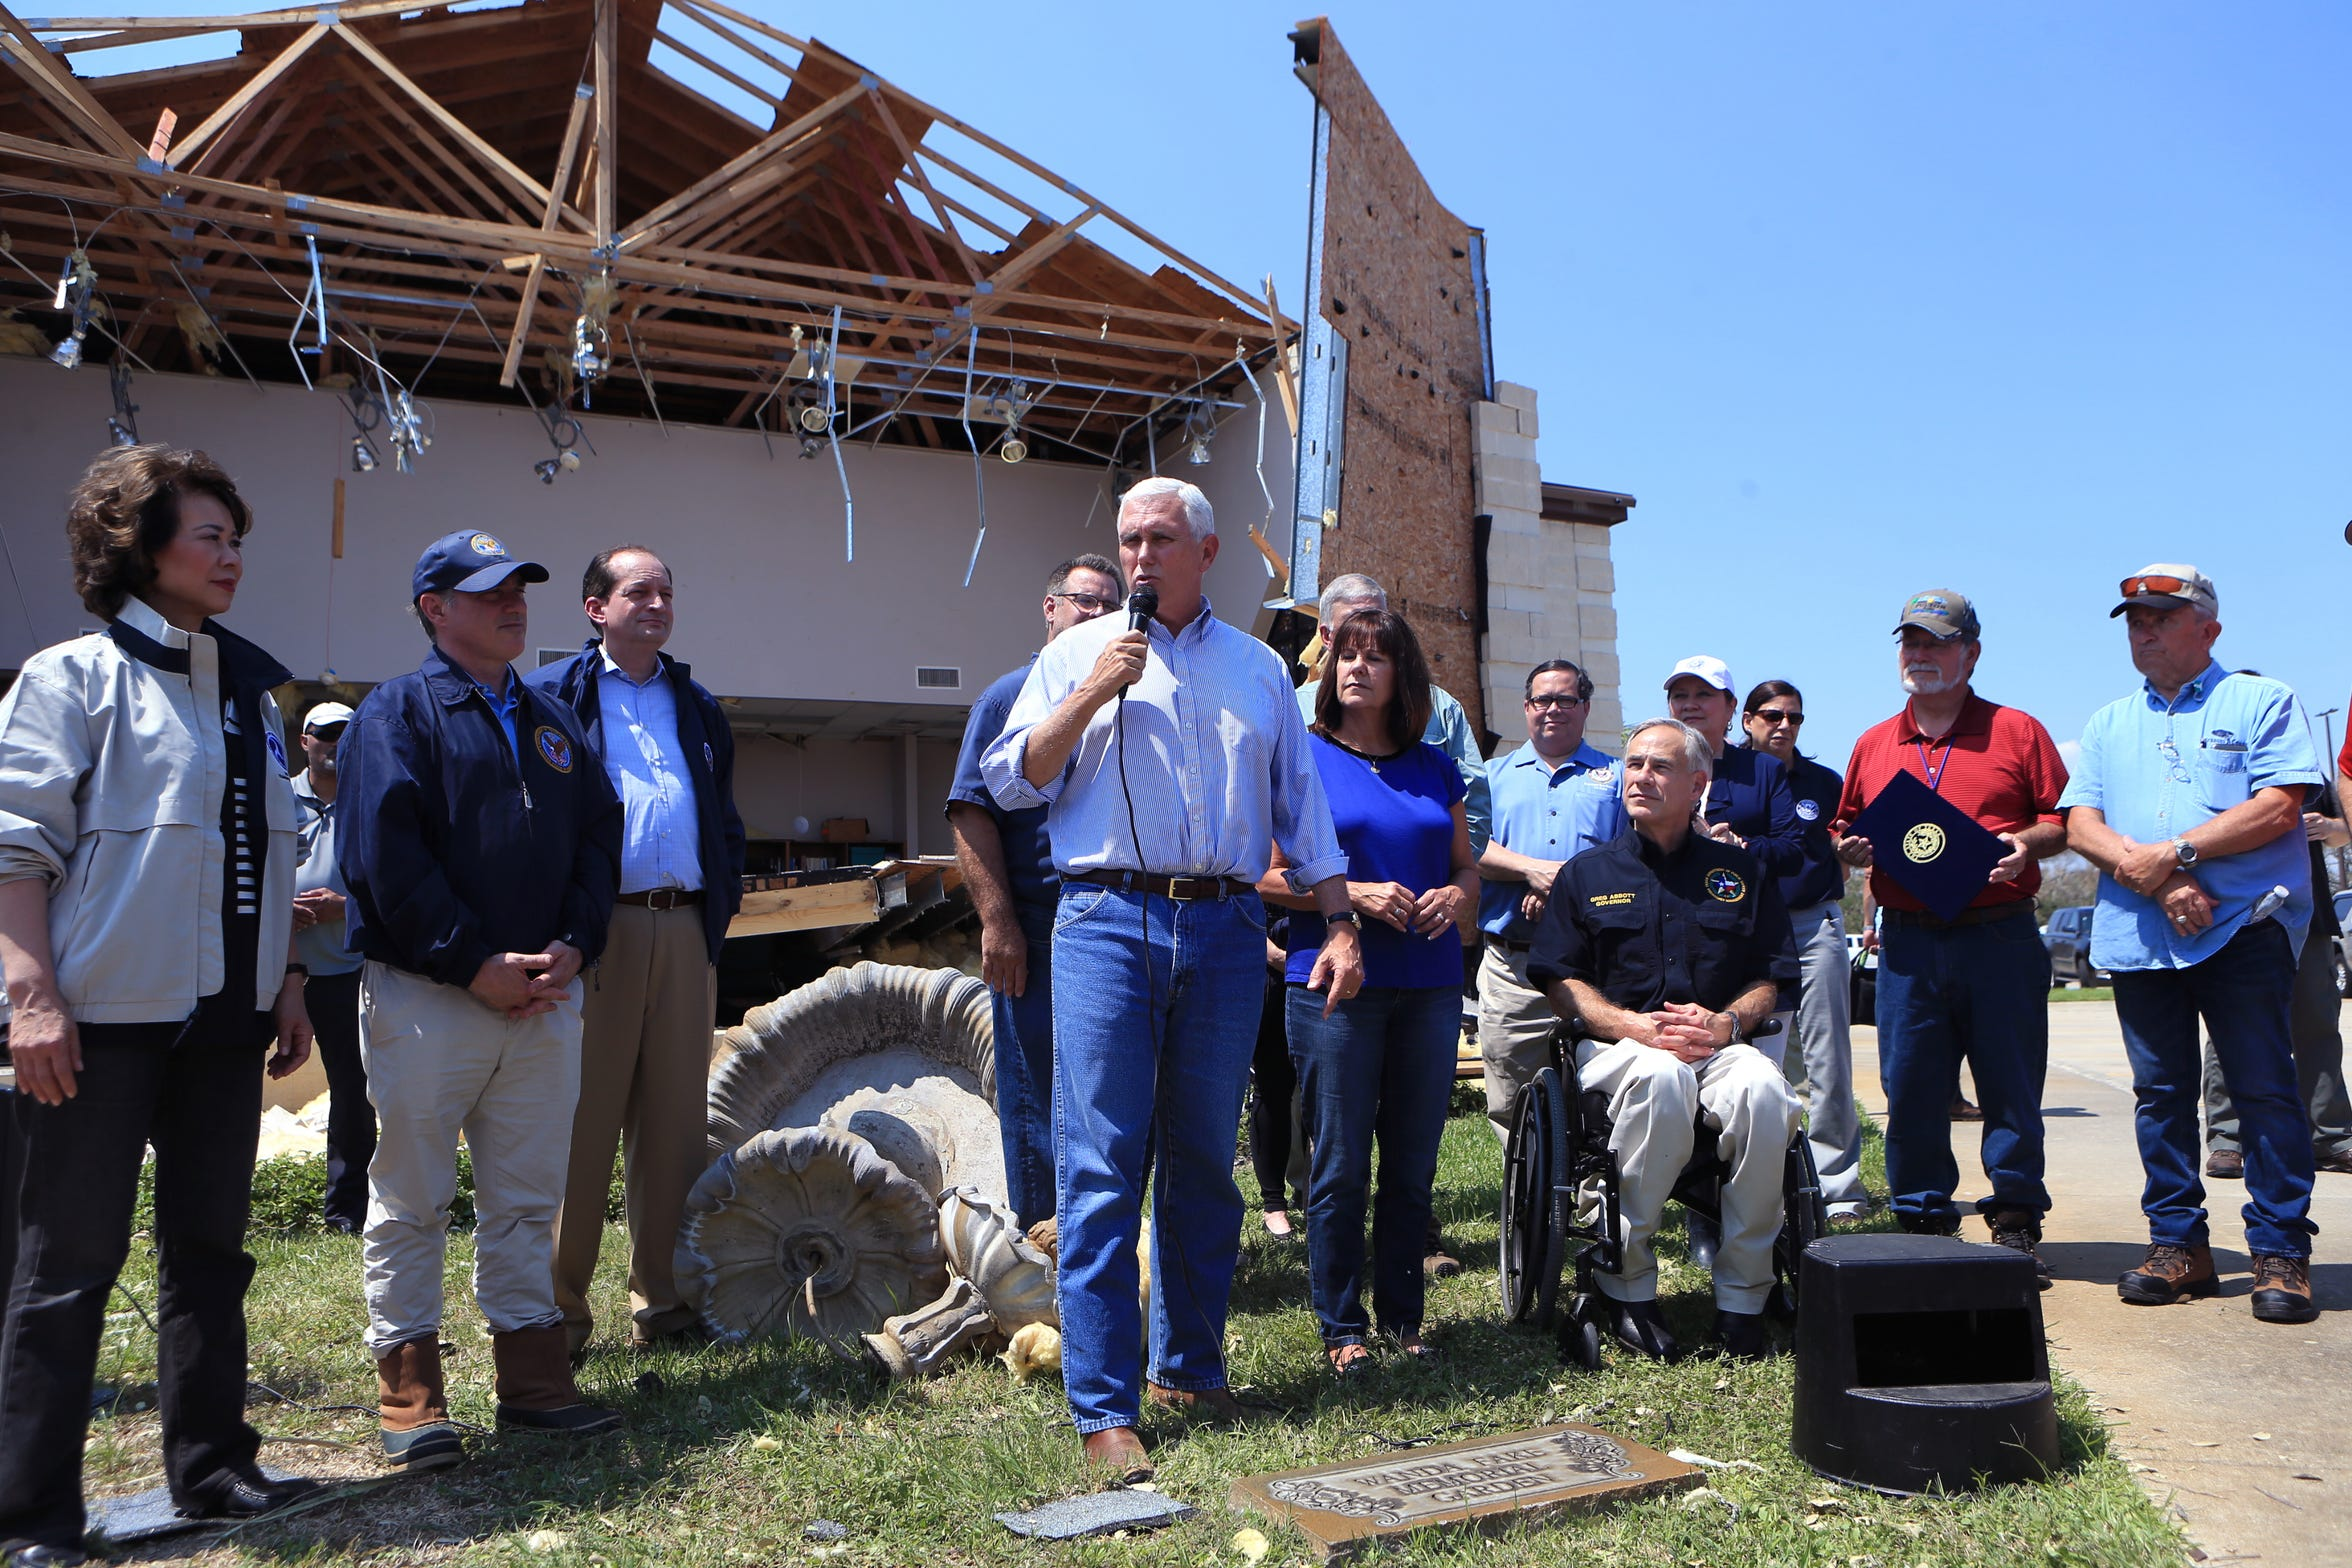 Vice President Mike Pence speaks to a large crowd gathered in Rockport, TX at the First Baptist Rockport on Thursday, August 31, 2017. Several secretaries of state and the Vice-President visited Rockport to reaffirm the federal government's promise of help for victims of Hurricane Harvey.